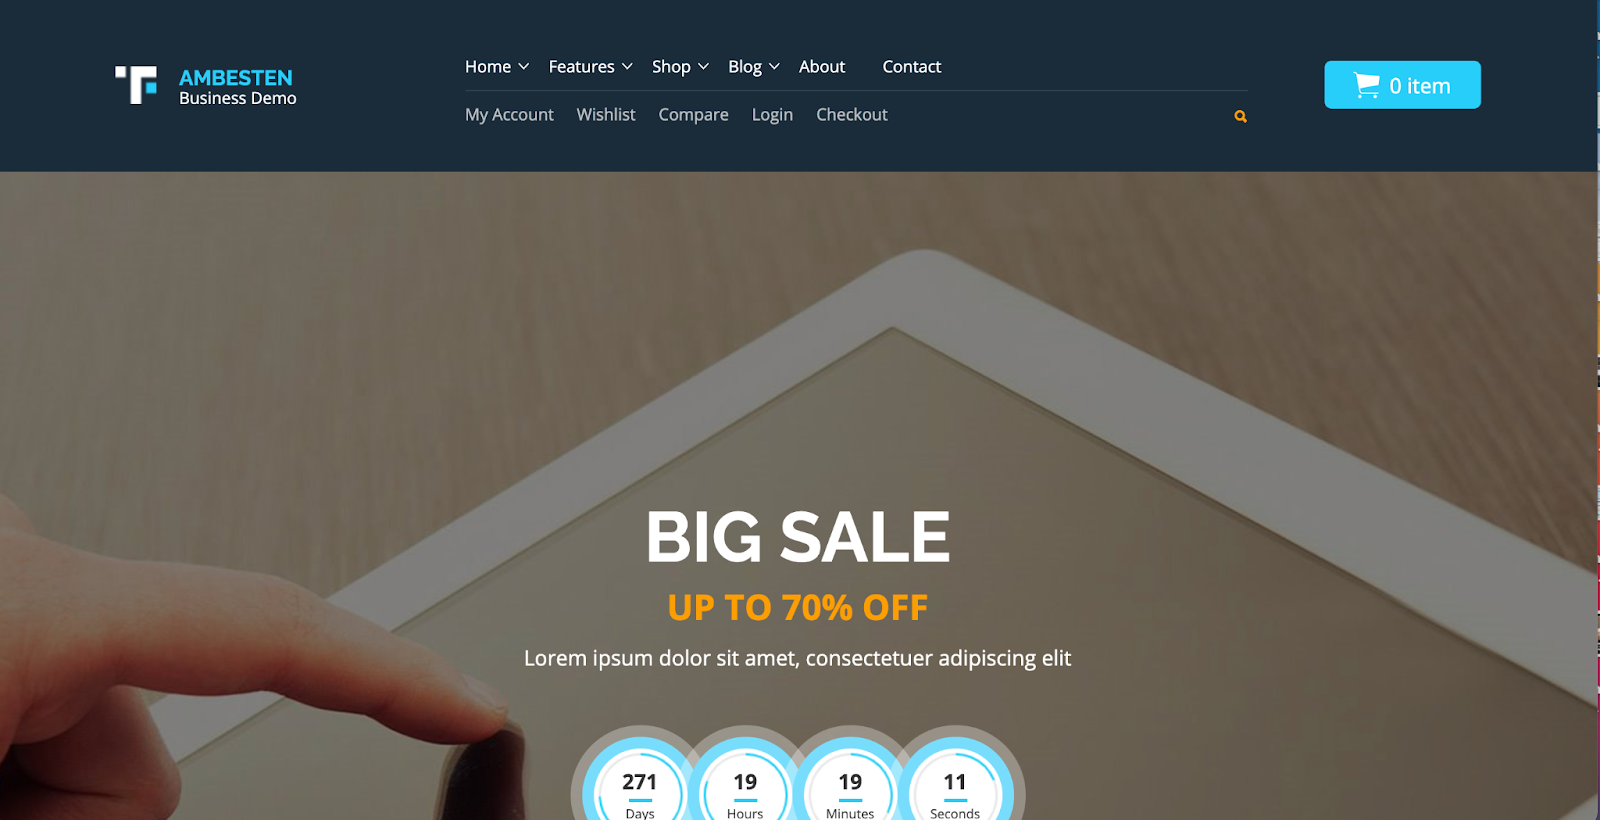 Ambesten WordPress Marketplace theme homepage featuring the tagline, computer screen, and example of the the theme layout